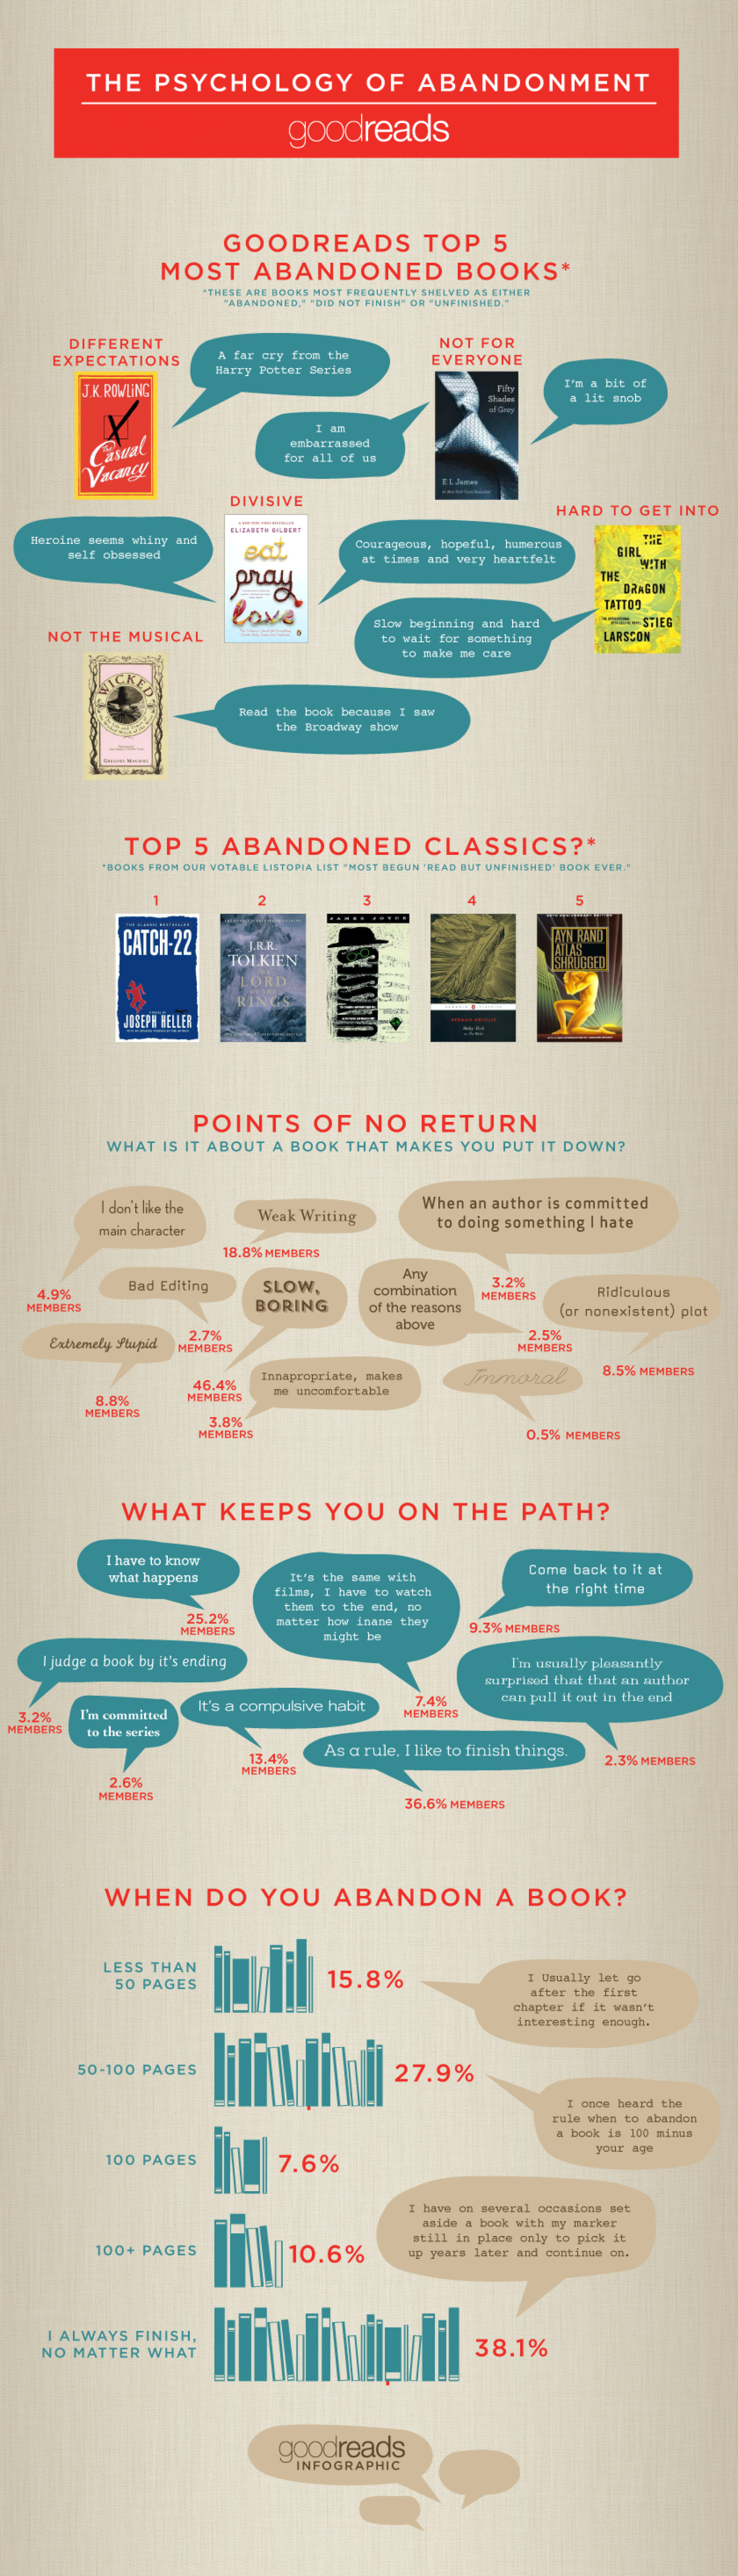 The Psychology of Abandonment Infographic